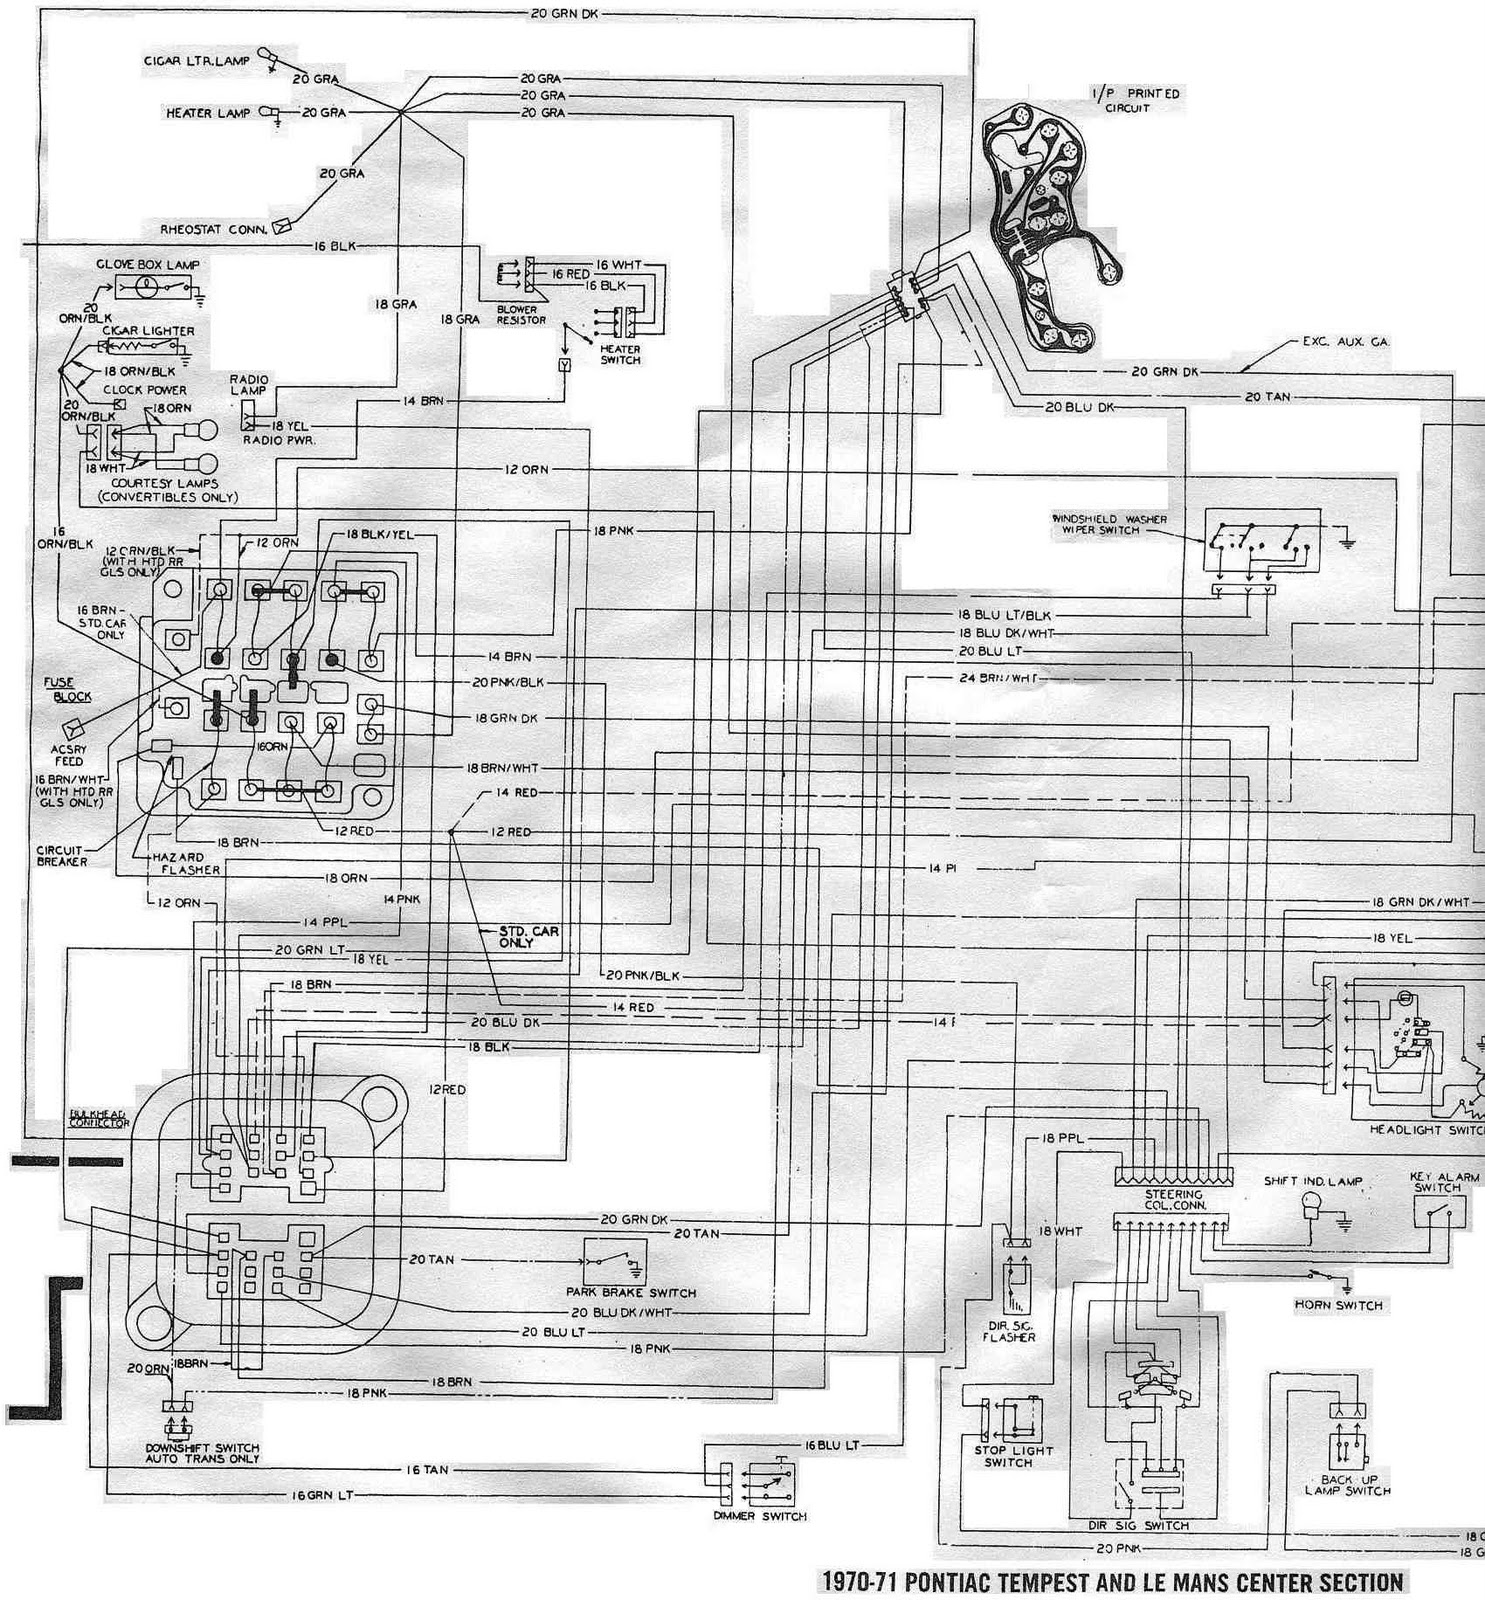 wiring schematic for 1970 gto - schematic diagram database on pontiac  interior, pontiac parts,